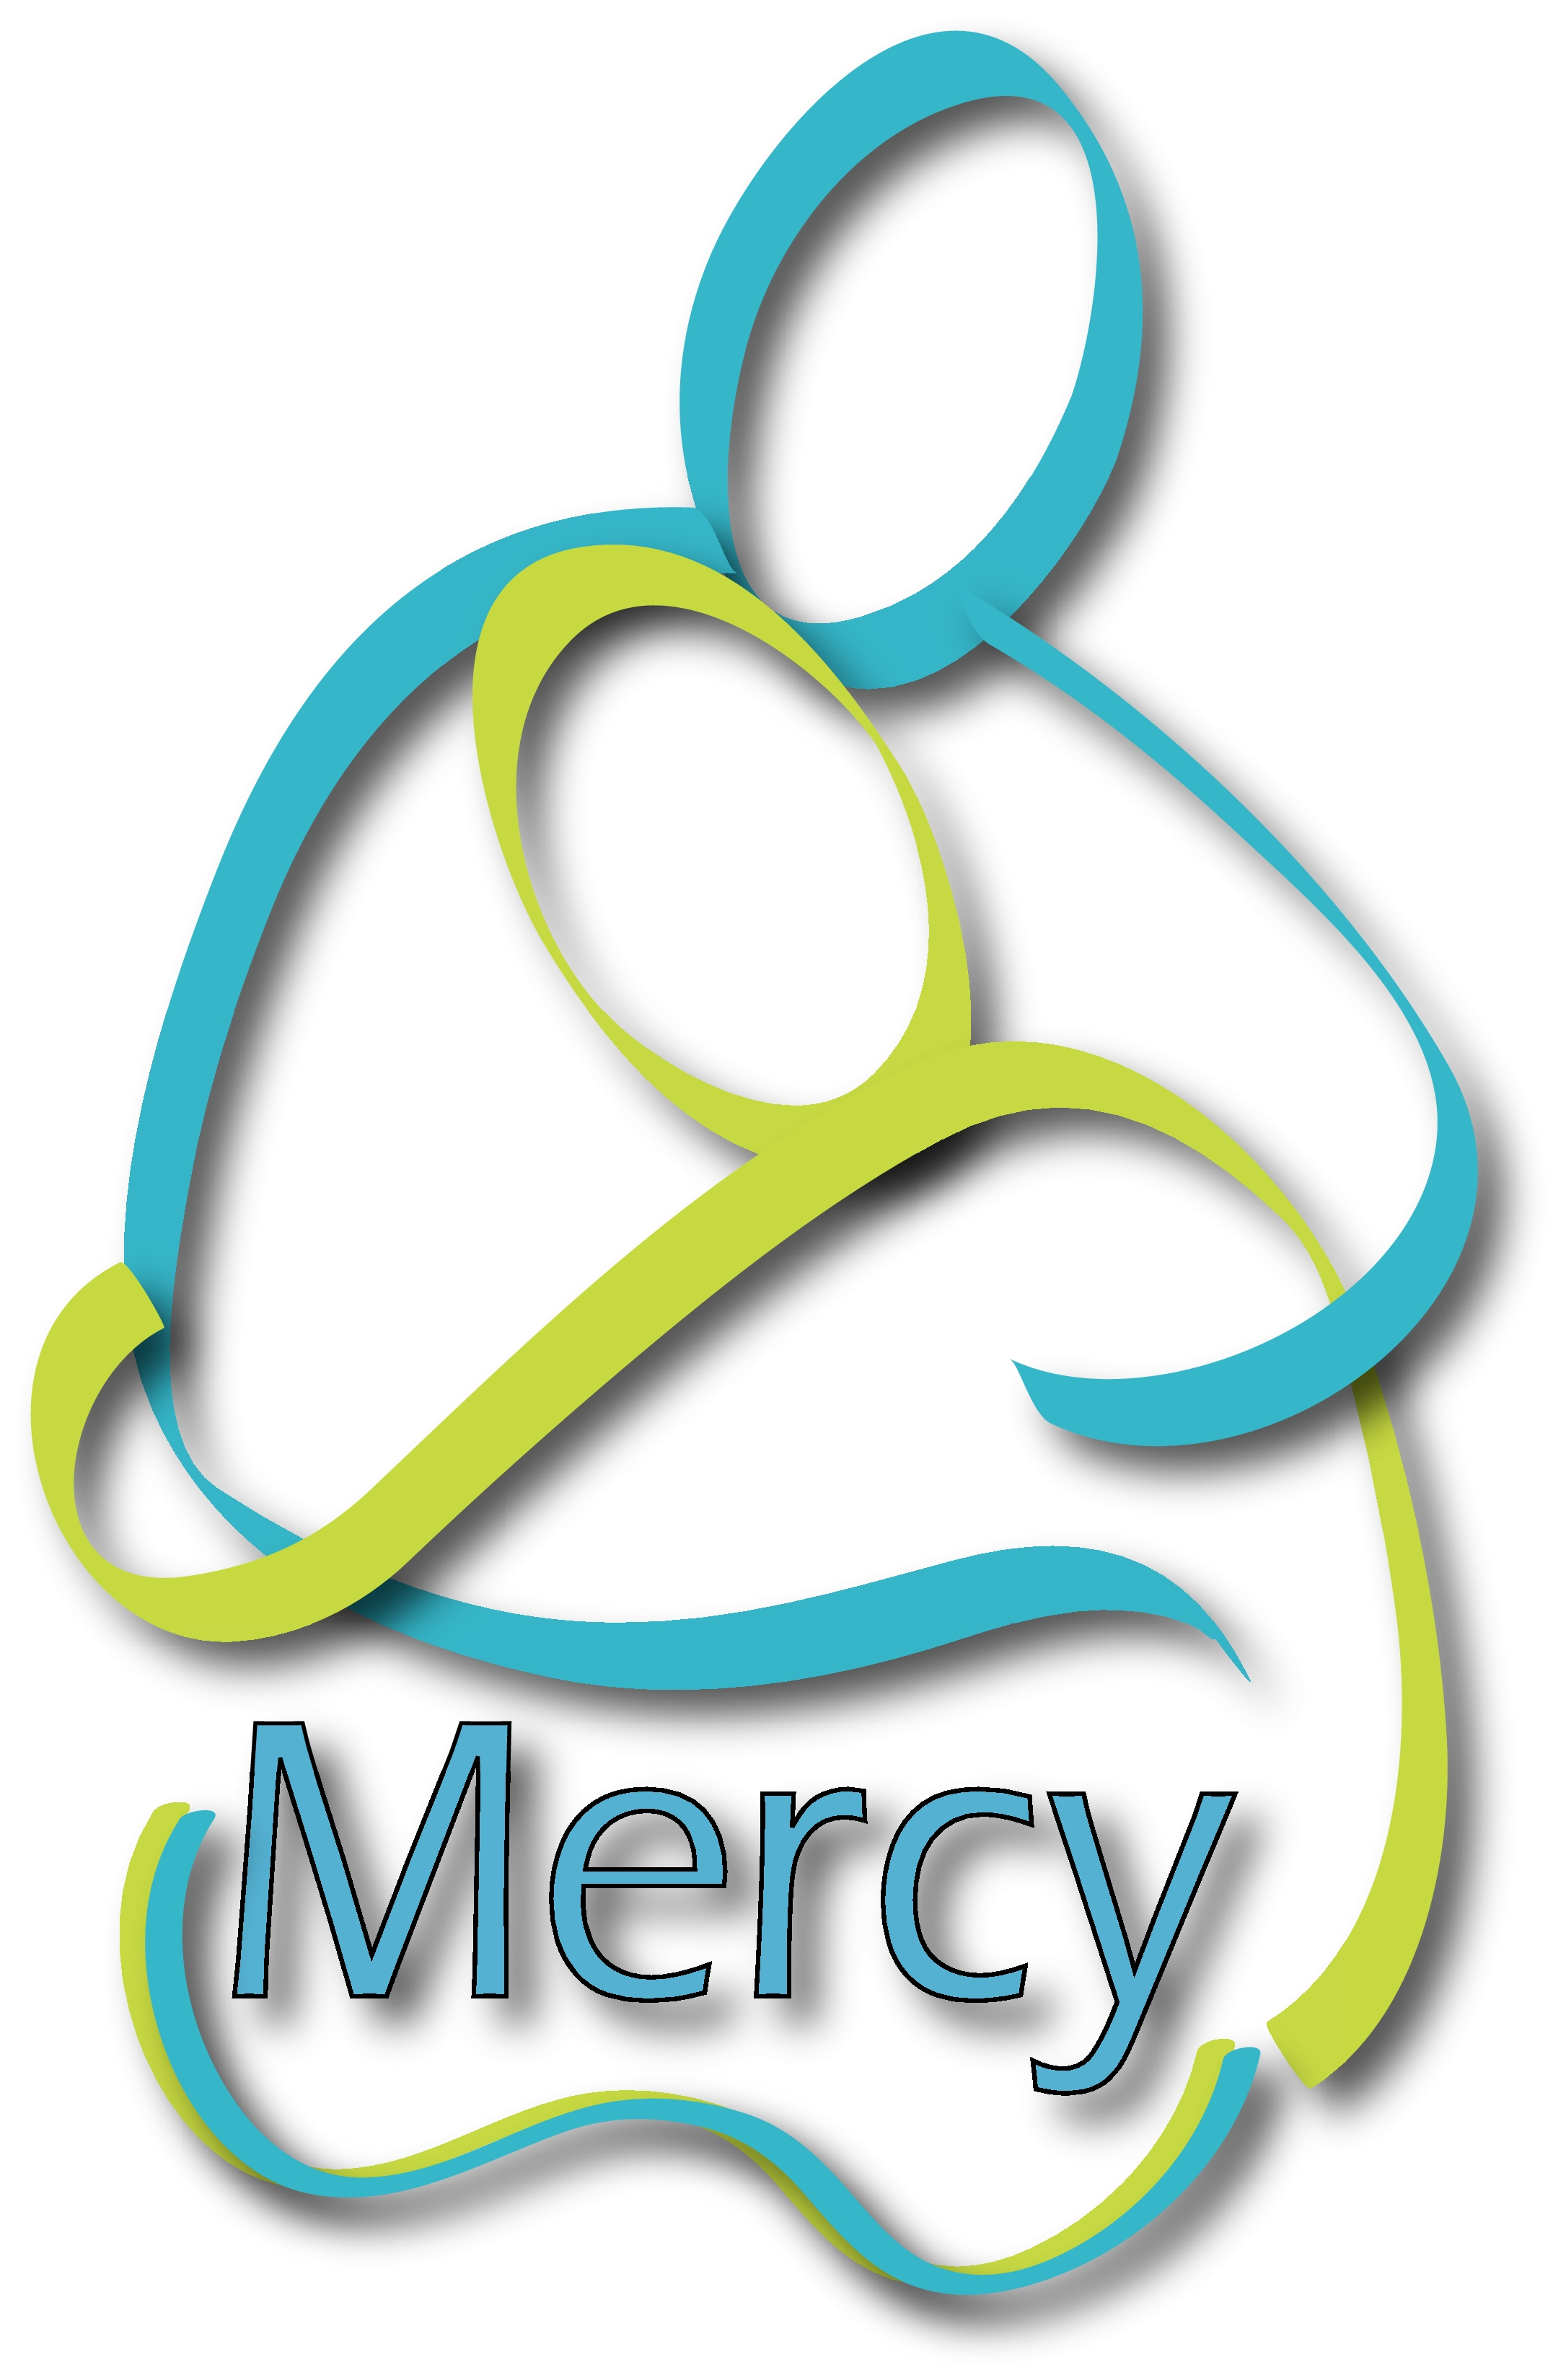 Clipart mercy clipart black and white Mercy Clipart | Clipart Panda - Free Clipart Images clipart black and white